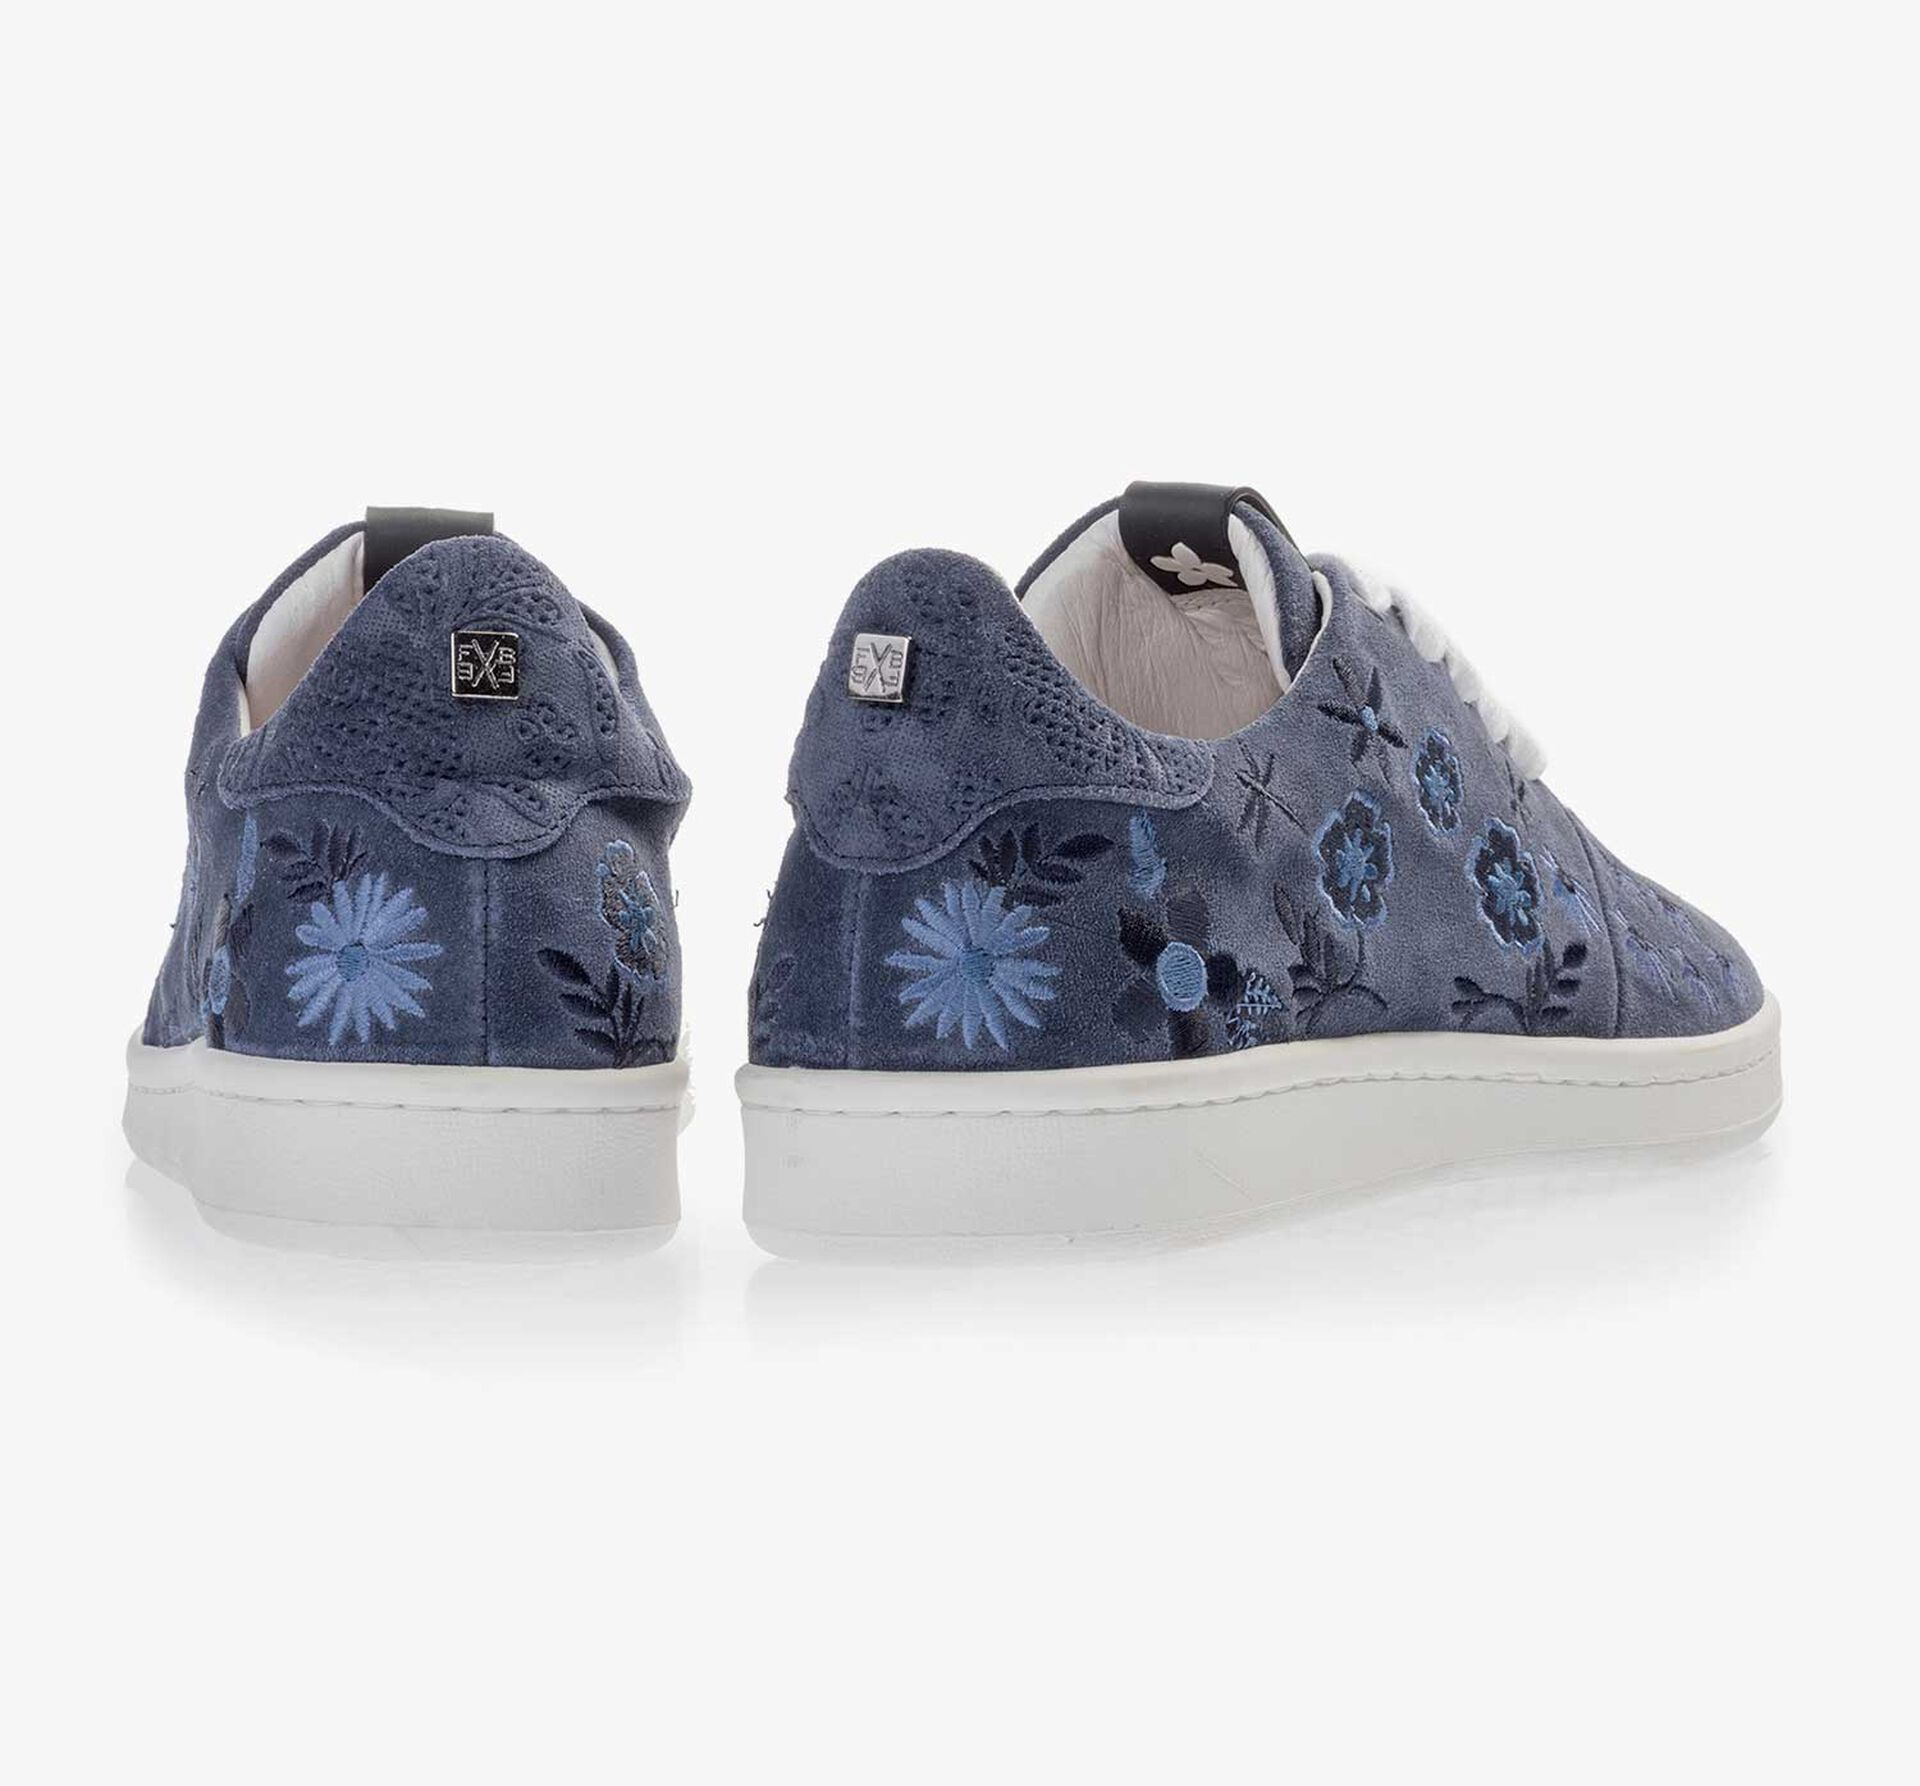 Dark blue suede leather sneaker with floral embroidery stitching